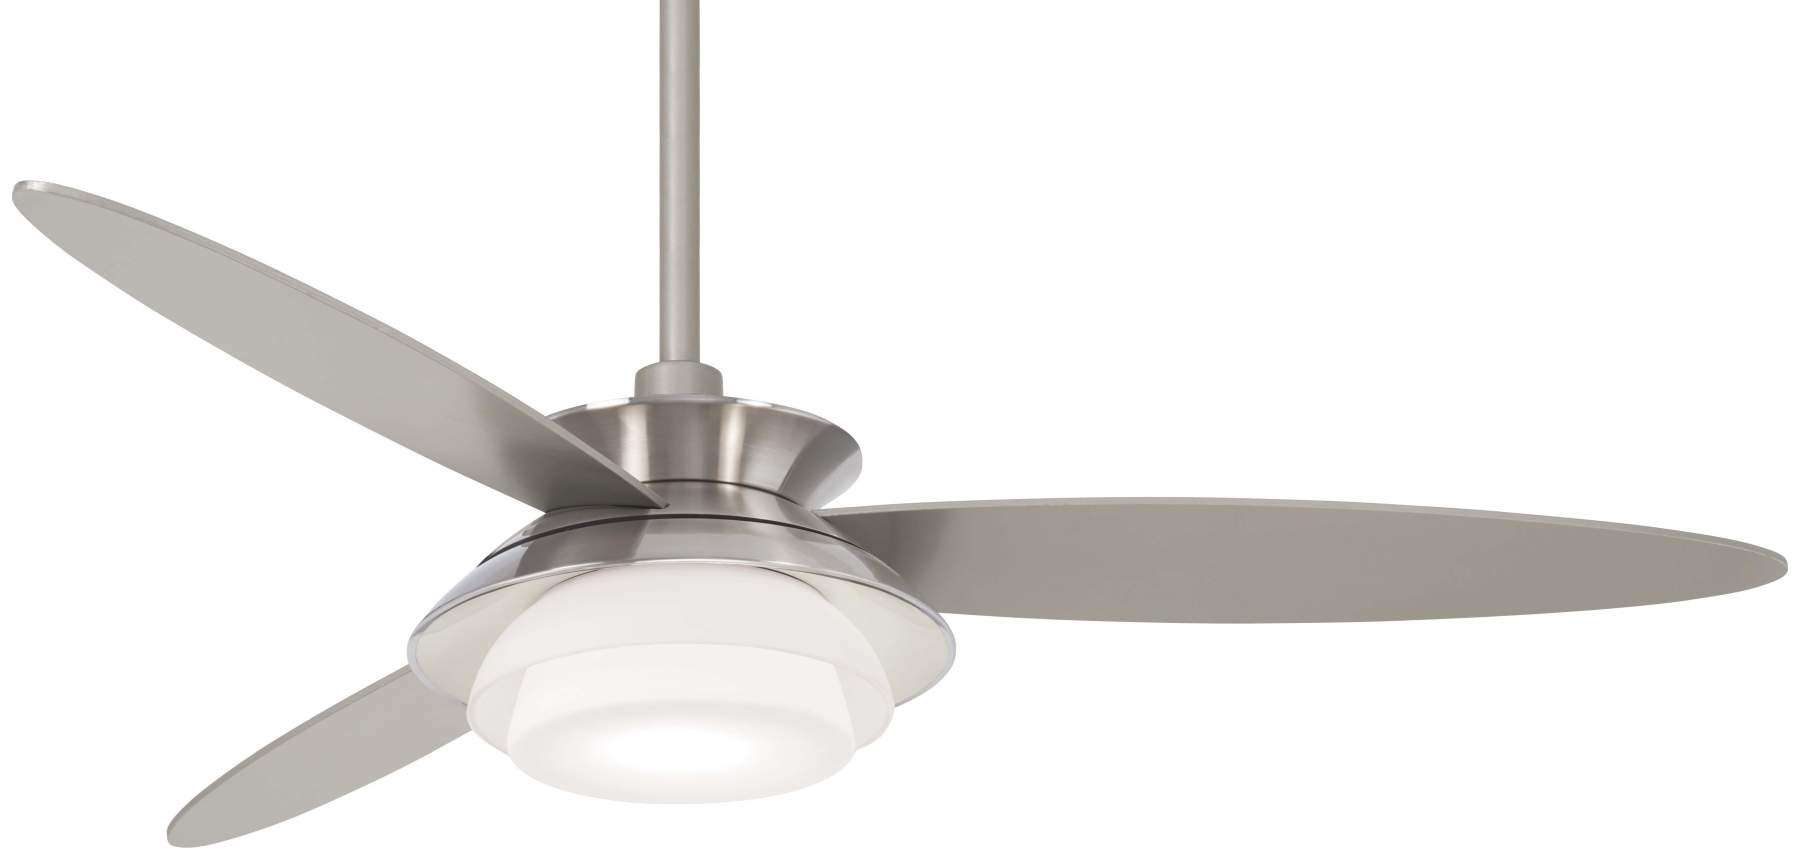 "Stack 56"" LED Ceiling Fan In Brushed Nickel And Silver"